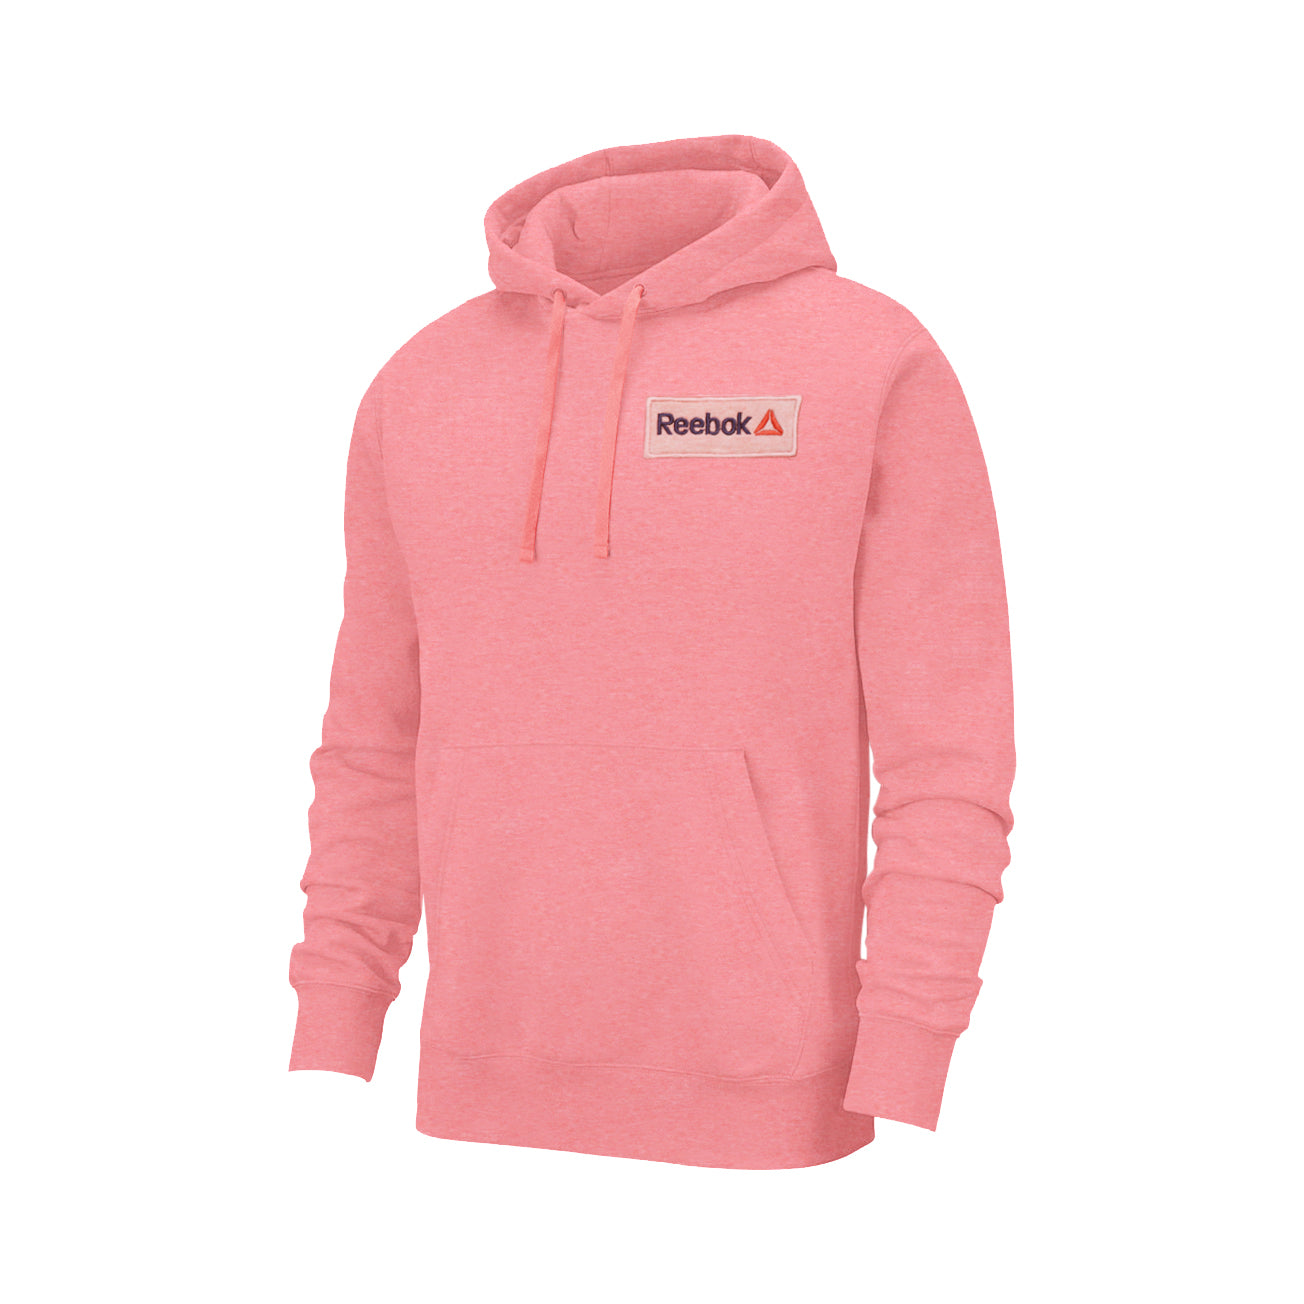 RB Fleece Pullover Hoodie For Men-Pink Melange With Navy Embroidery-BE13557